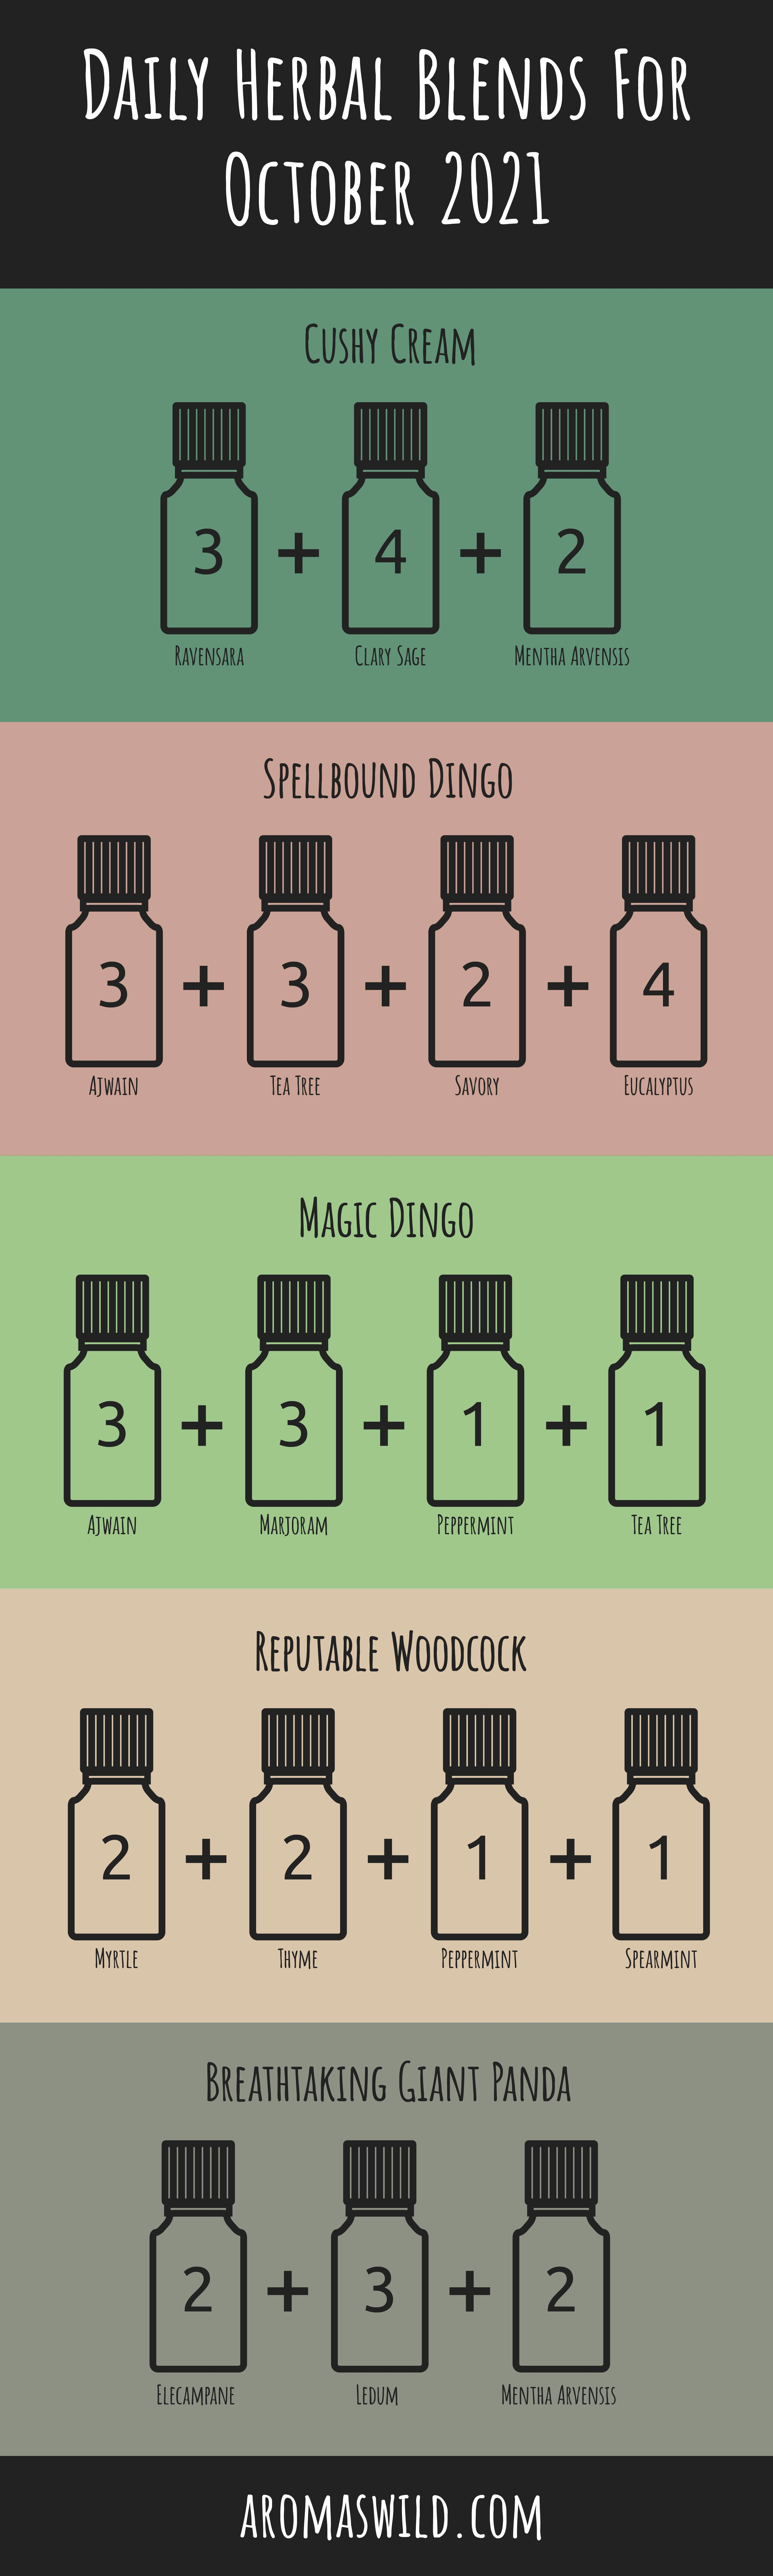 Herbaceous Scents For Diffuser – Daily Herbal Blends For 16 October 2021